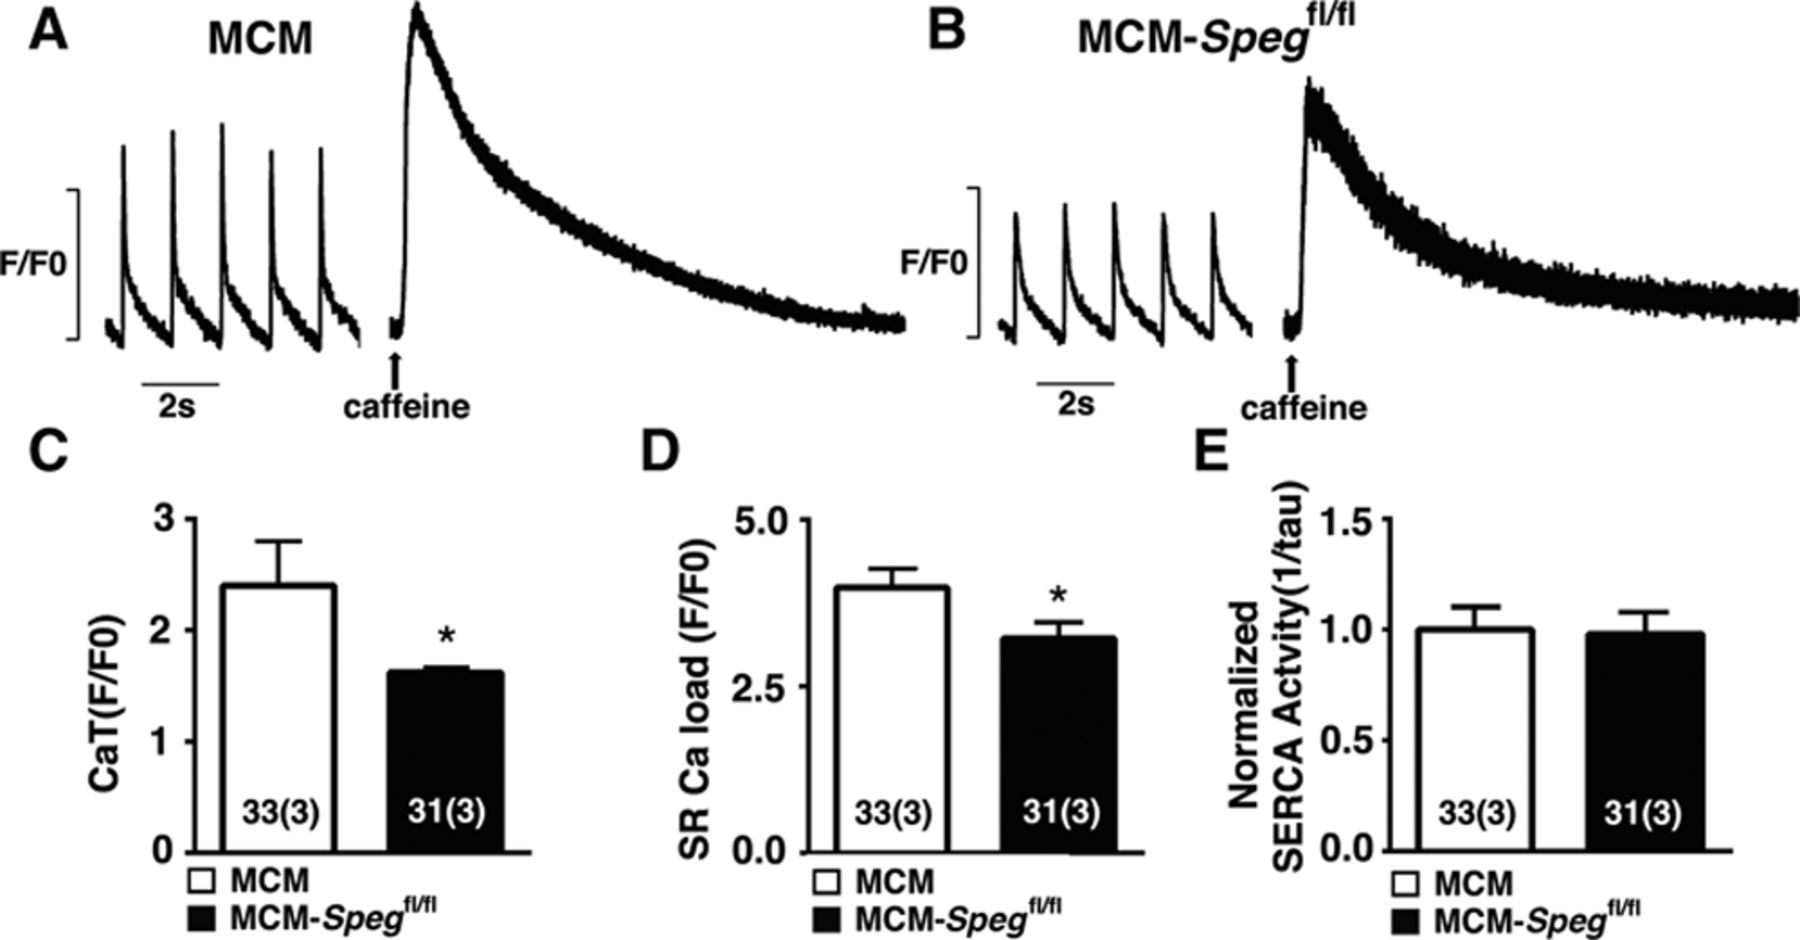 SPEG (Striated Muscle Preferentially Expressed Protein Kinase) Is